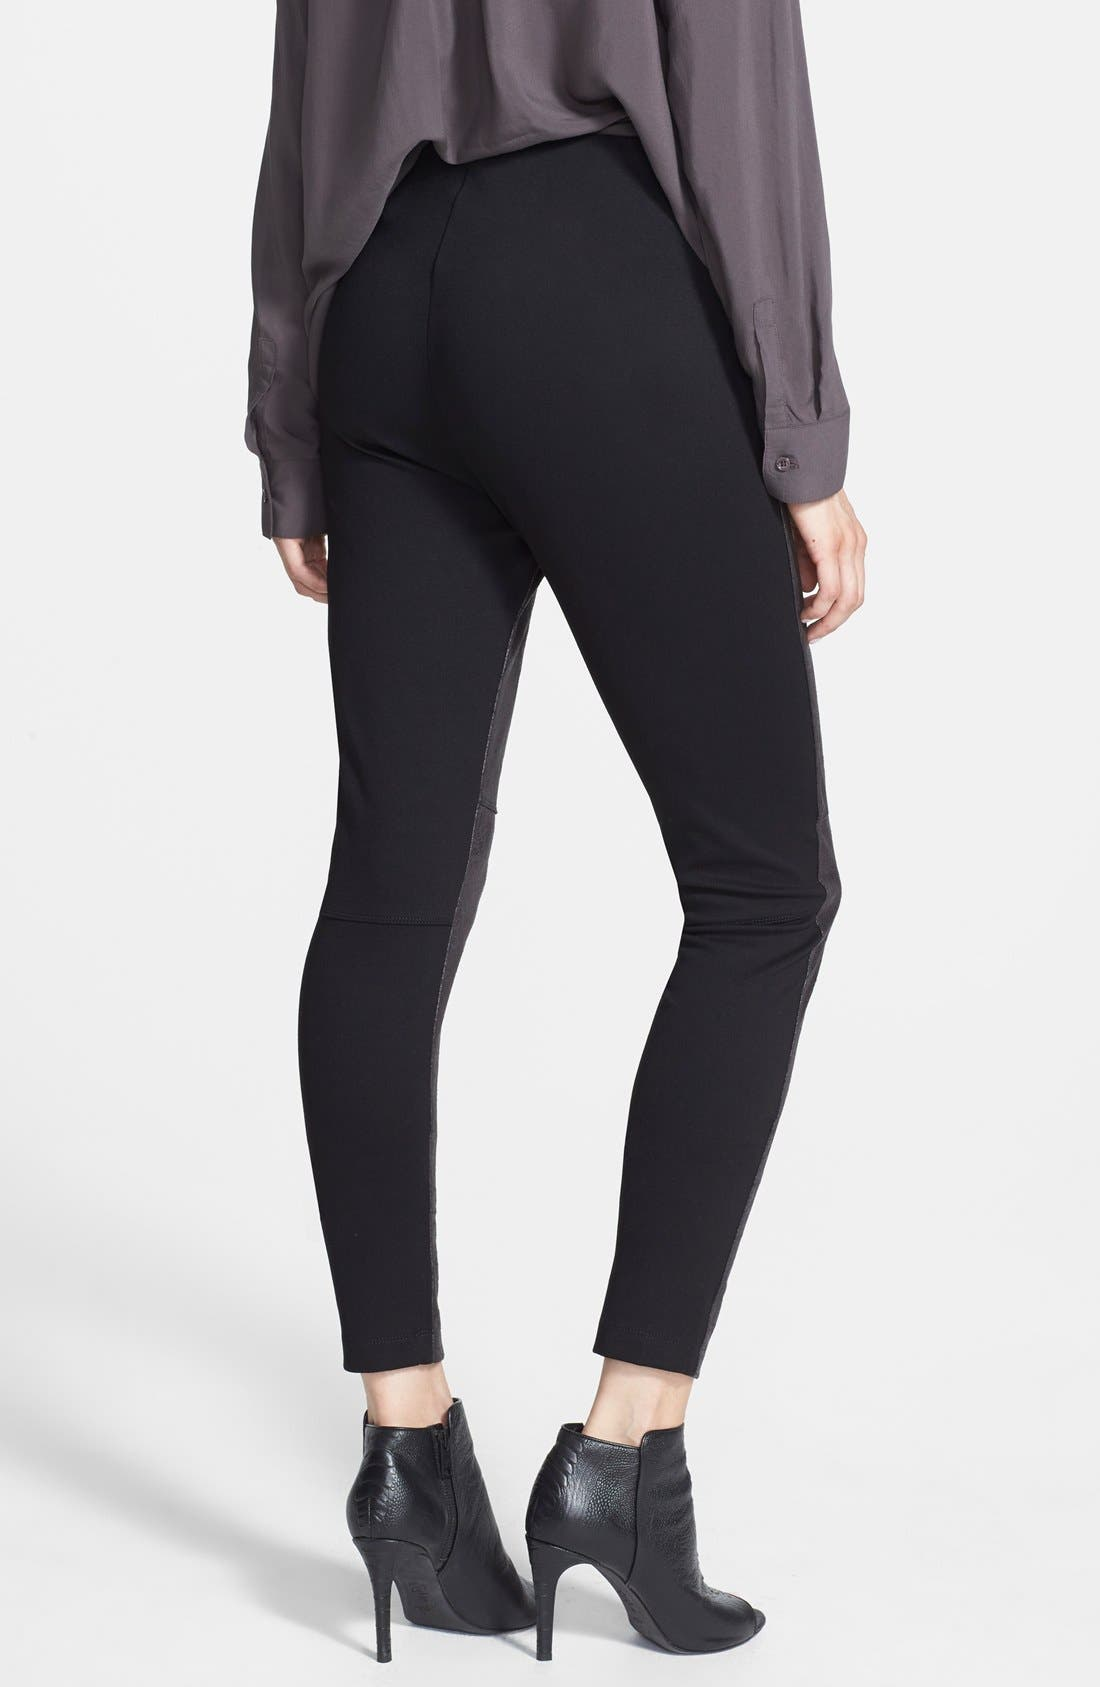 'Rue' Faux Leather & Ponte Knit Leggings,                             Alternate thumbnail 2, color,                             Black